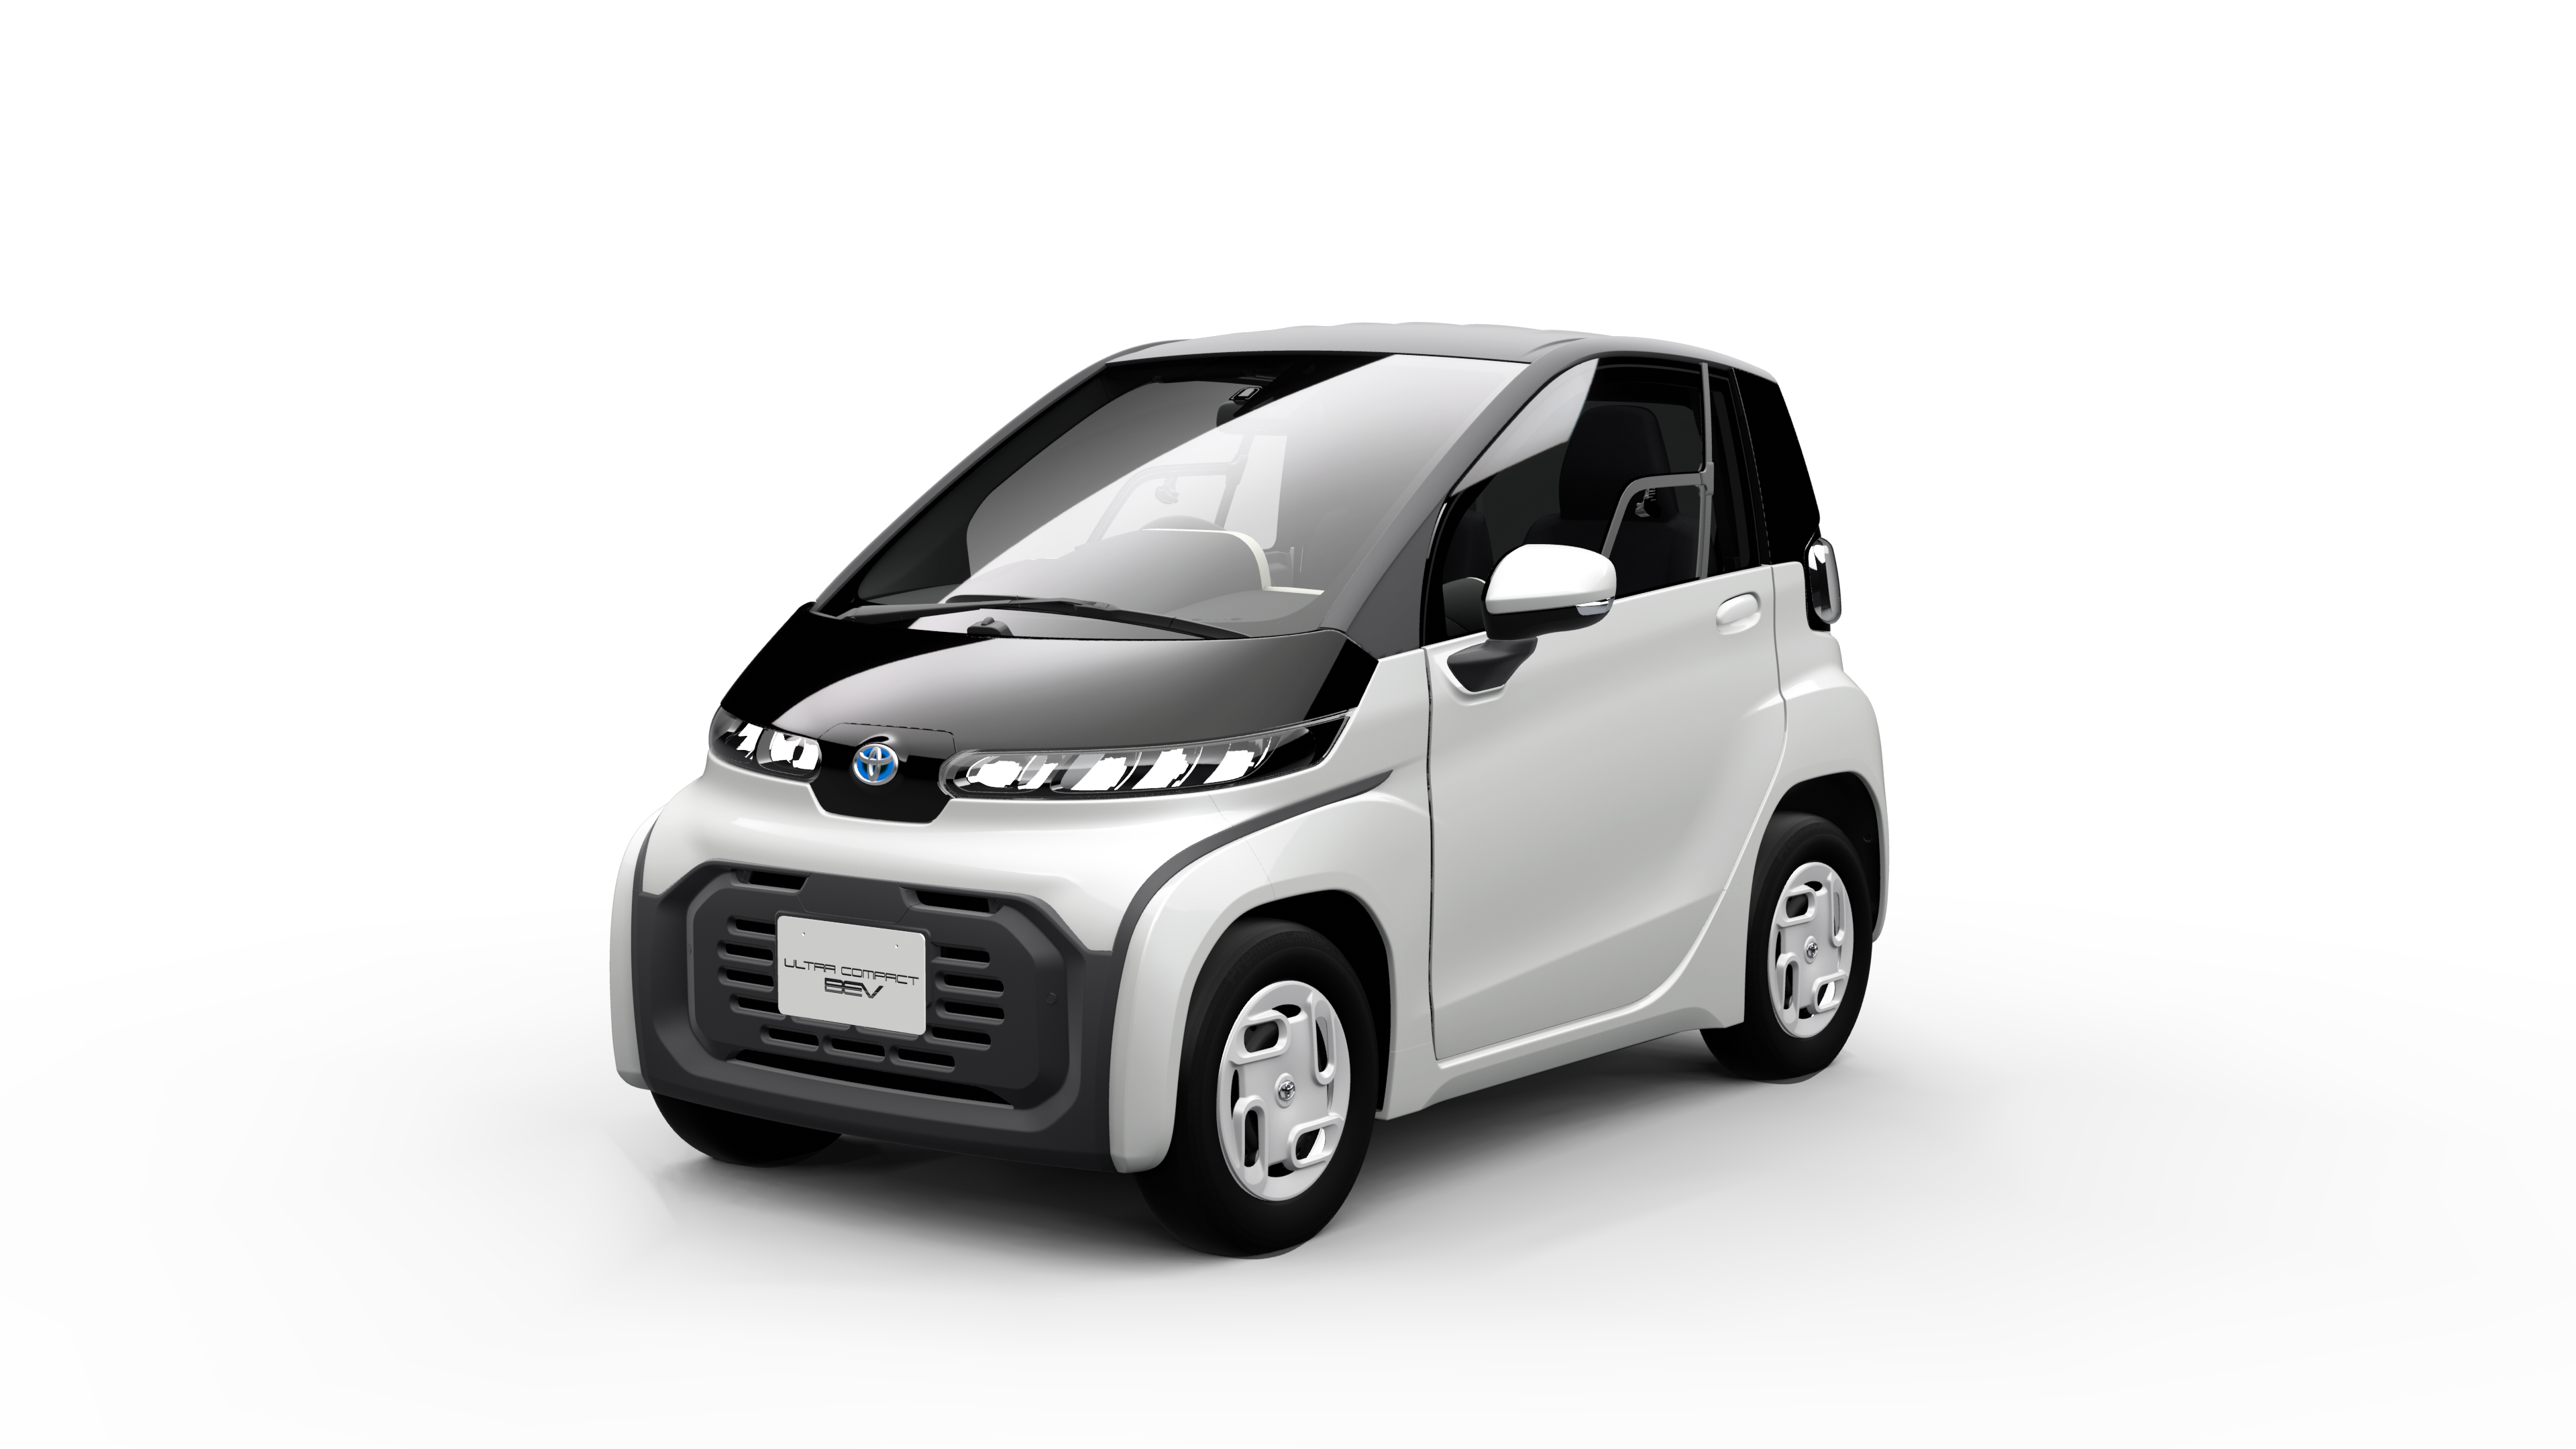 Toyota's minuscule electric city car prepares for 2020 debut